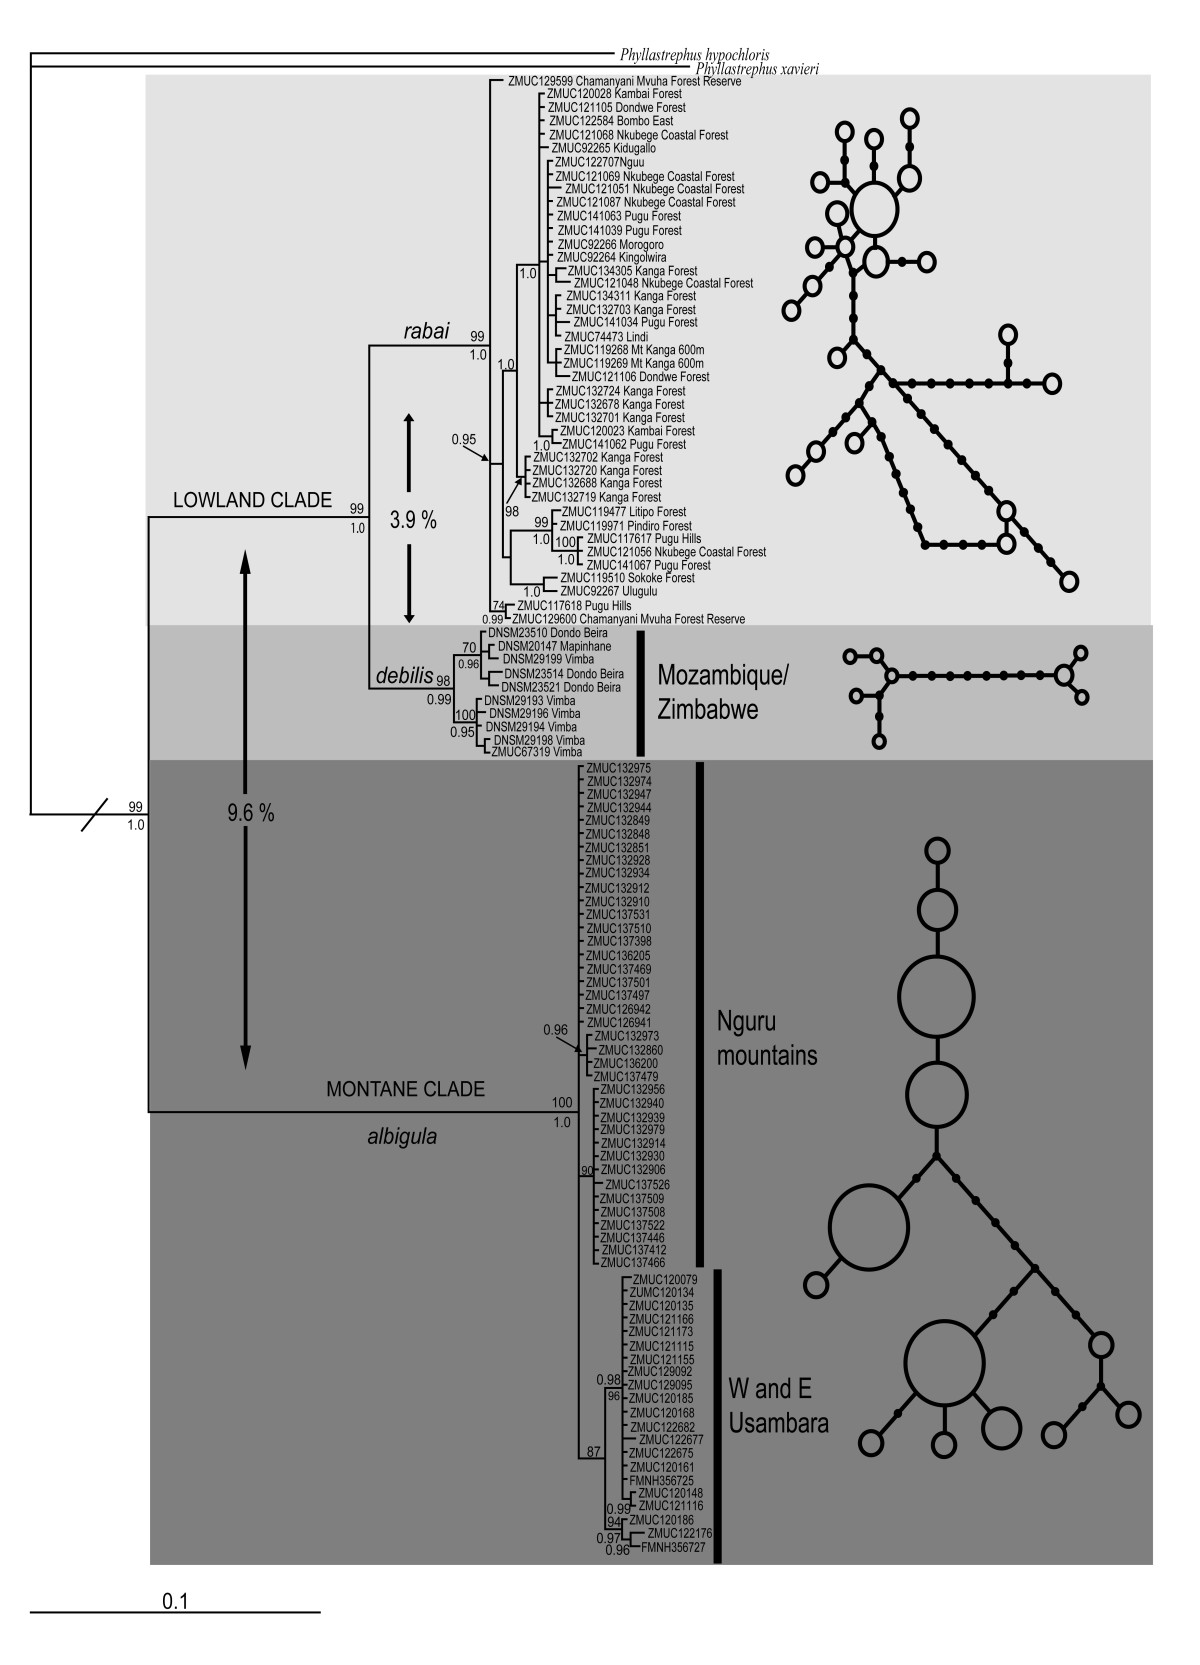 https://static-content.springer.com/image/art%3A10.1186%2F1471-2148-11-117/MediaObjects/12862_2010_Article_1708_Fig2_HTML.jpg